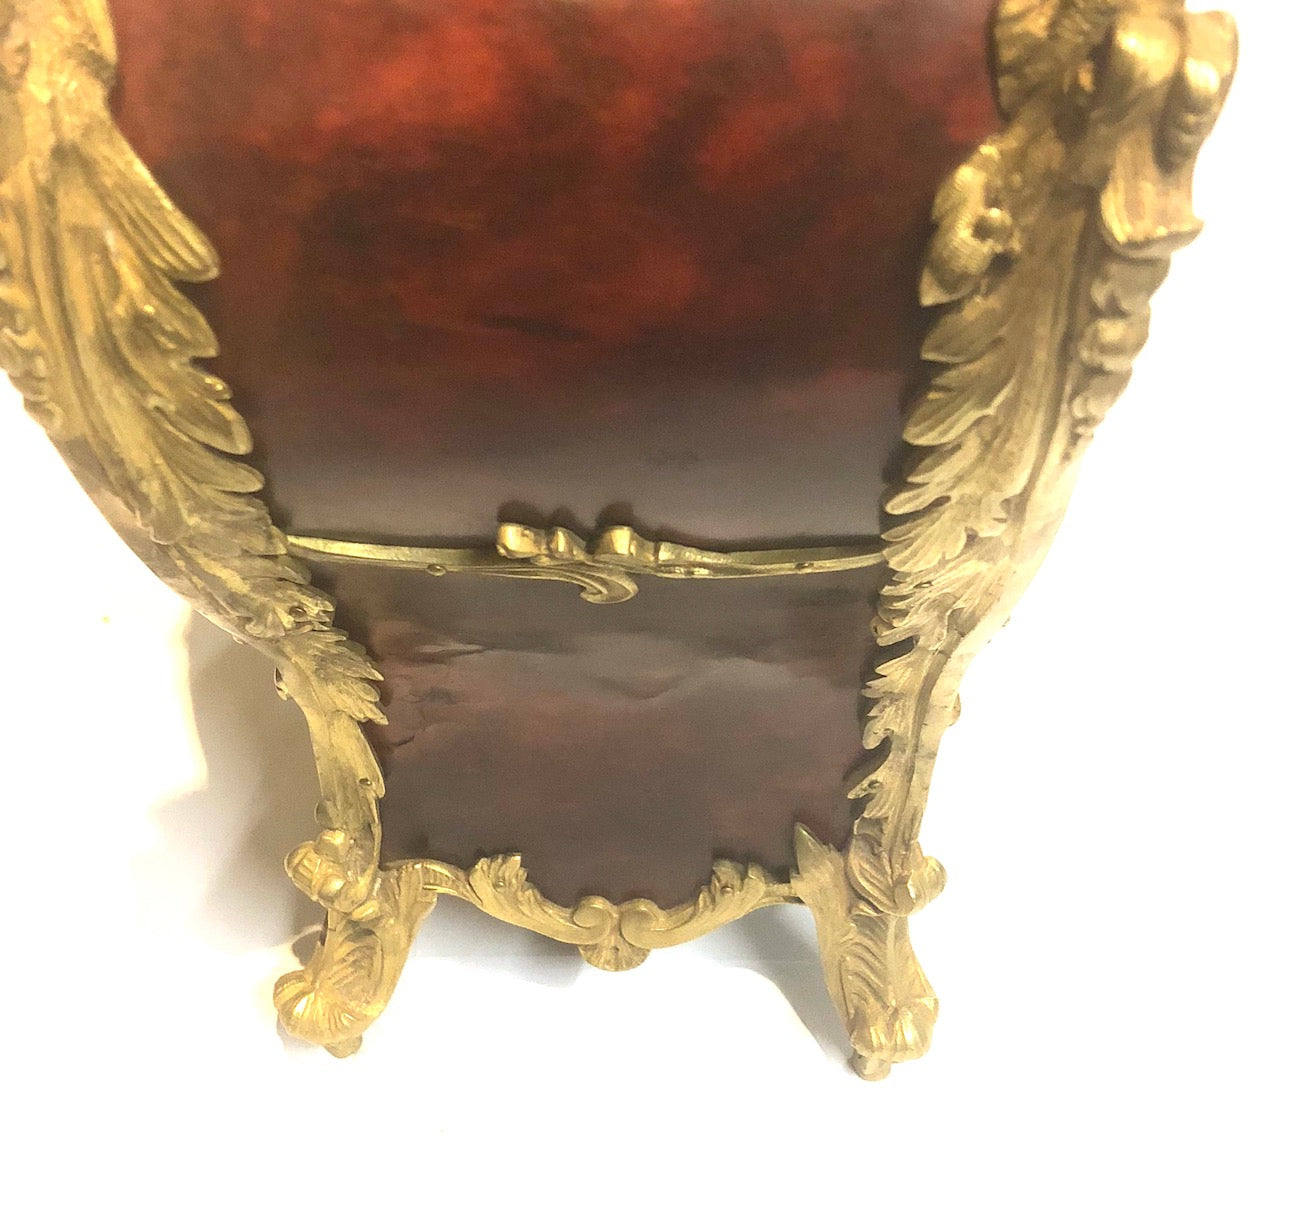 A French 19th Century Louis XV Style Ormolu Mounted Bracket Clock